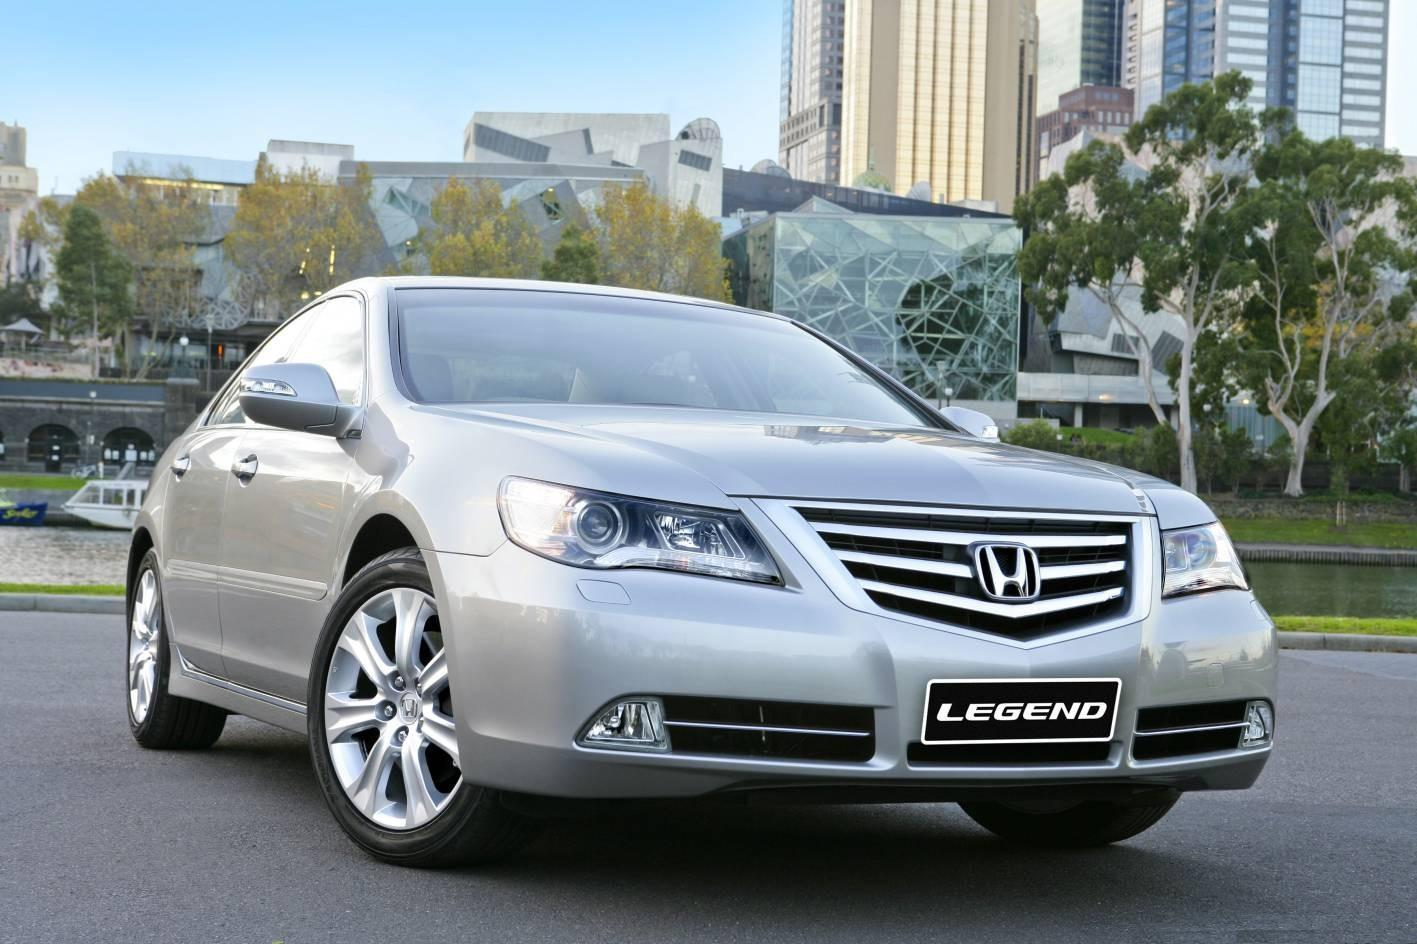 Honda Legend #17